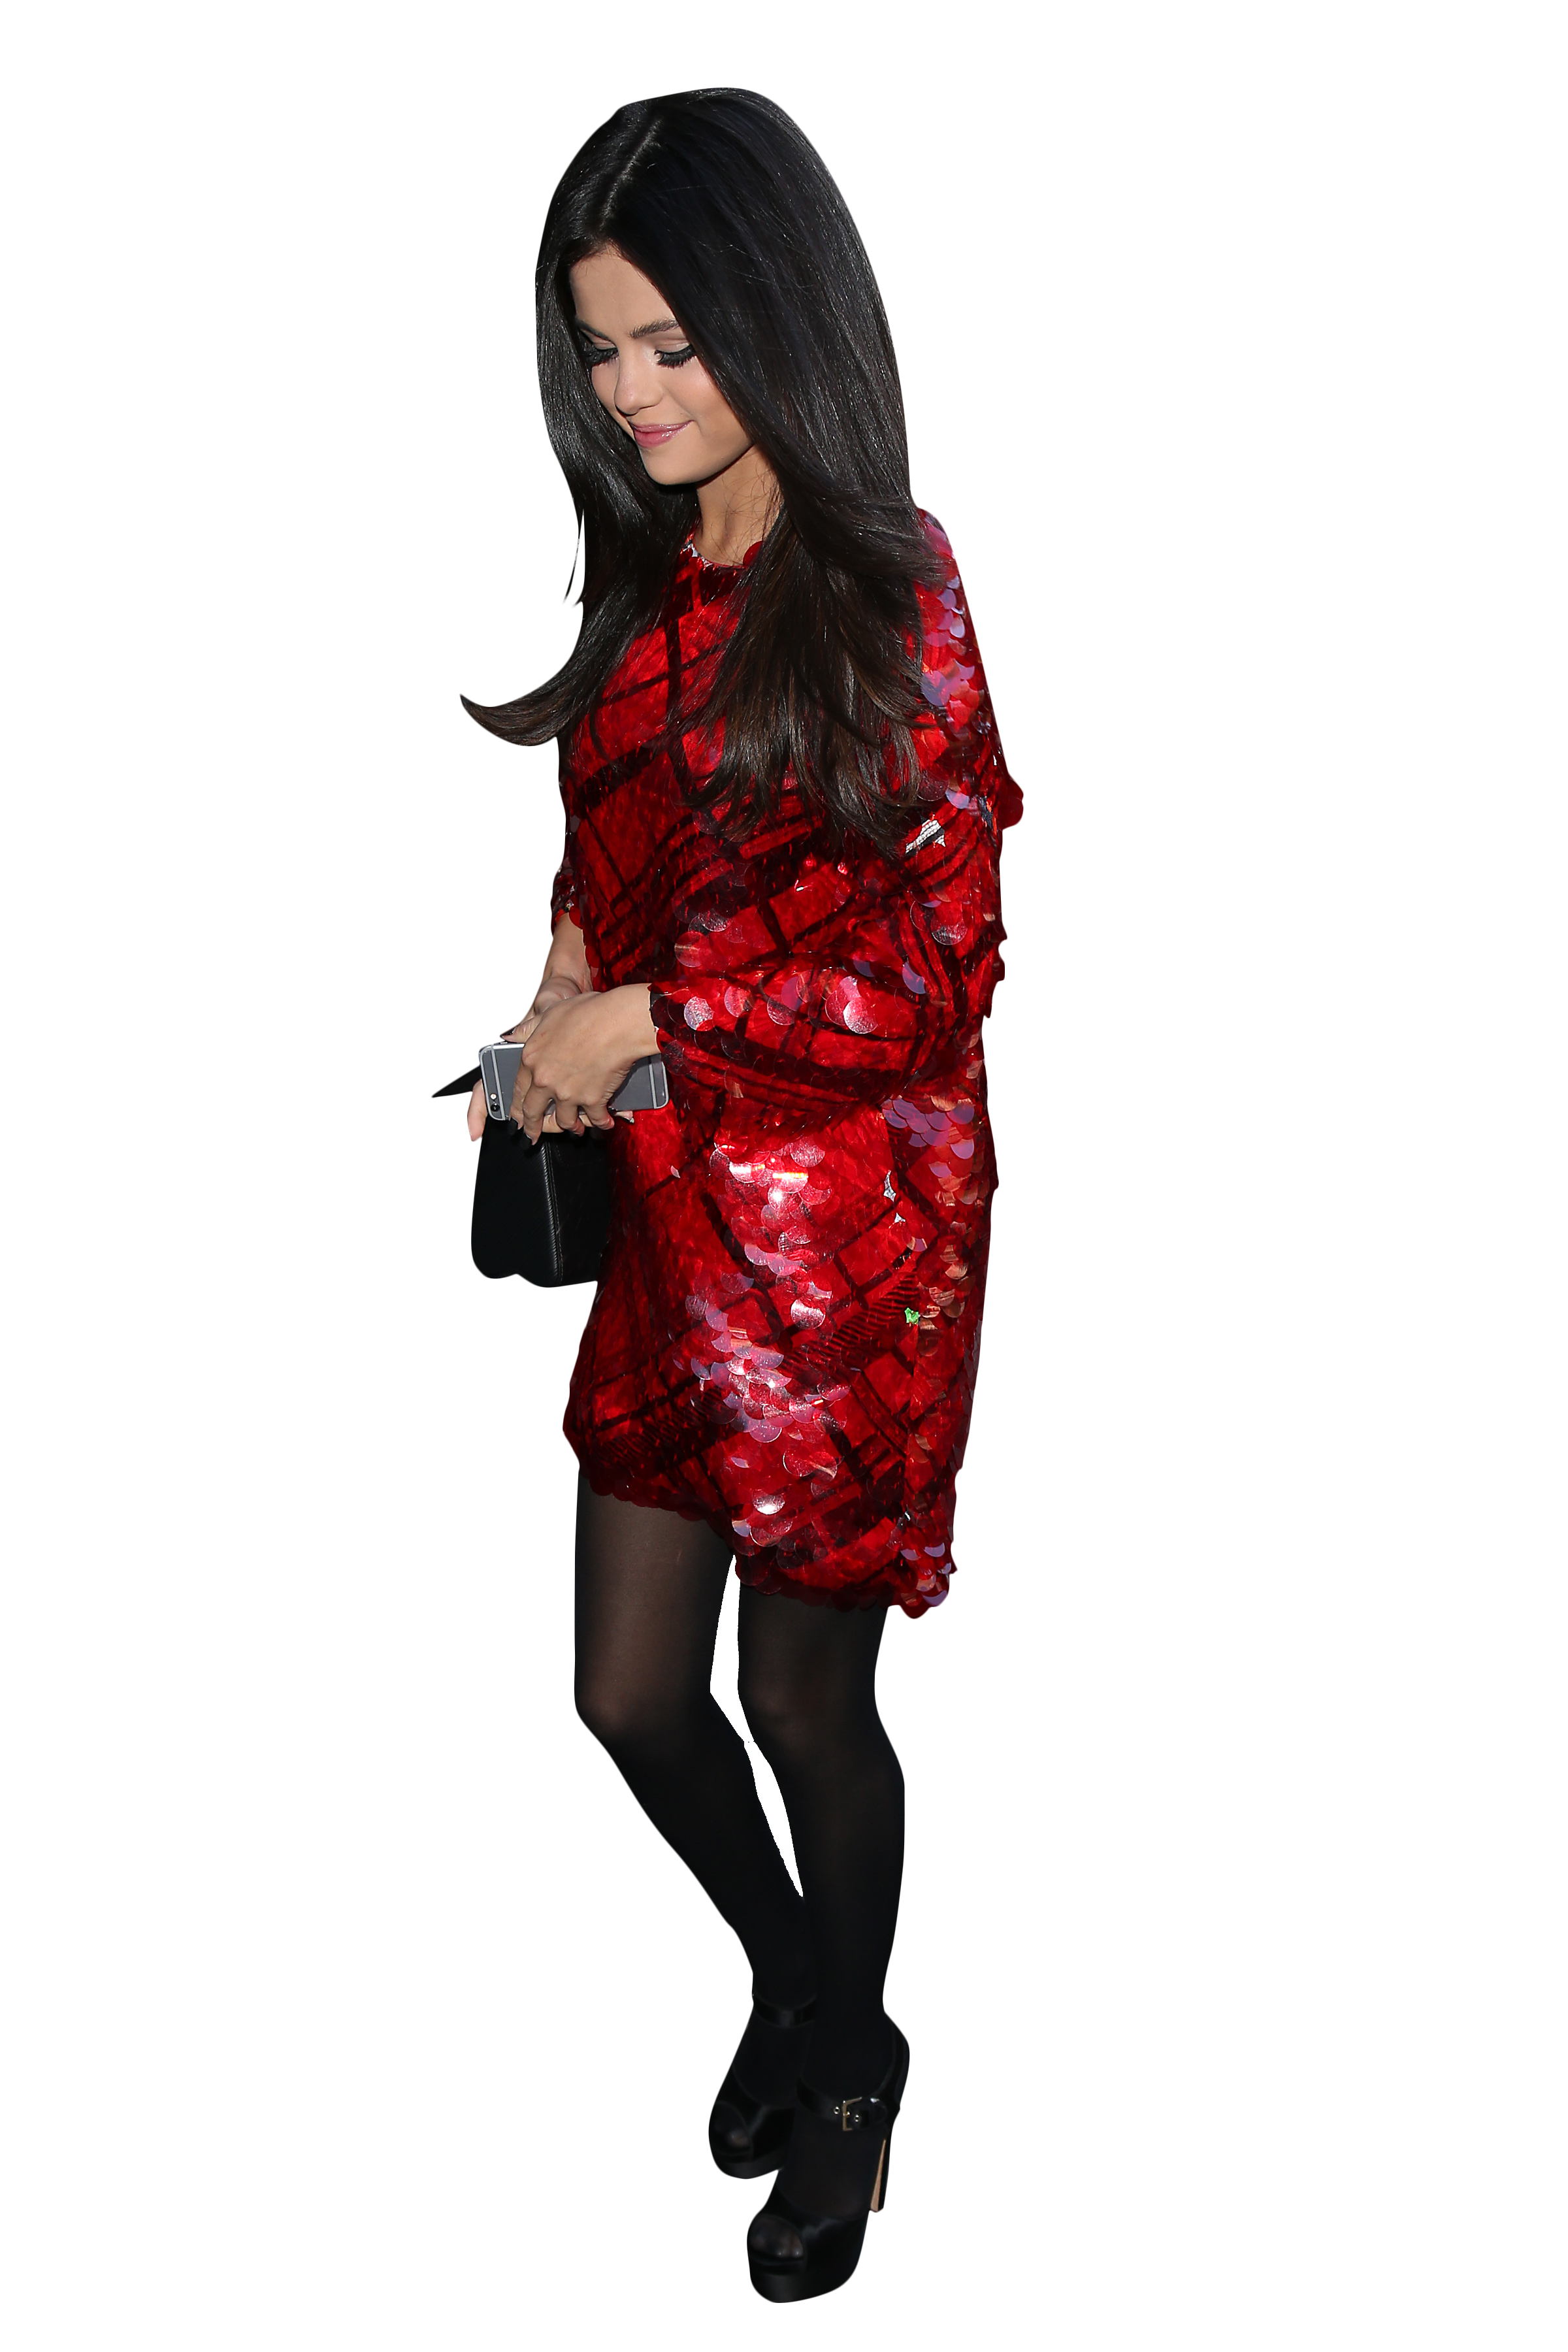 Selena Gomez in Red Dress and Black Pantyhose PNG Image